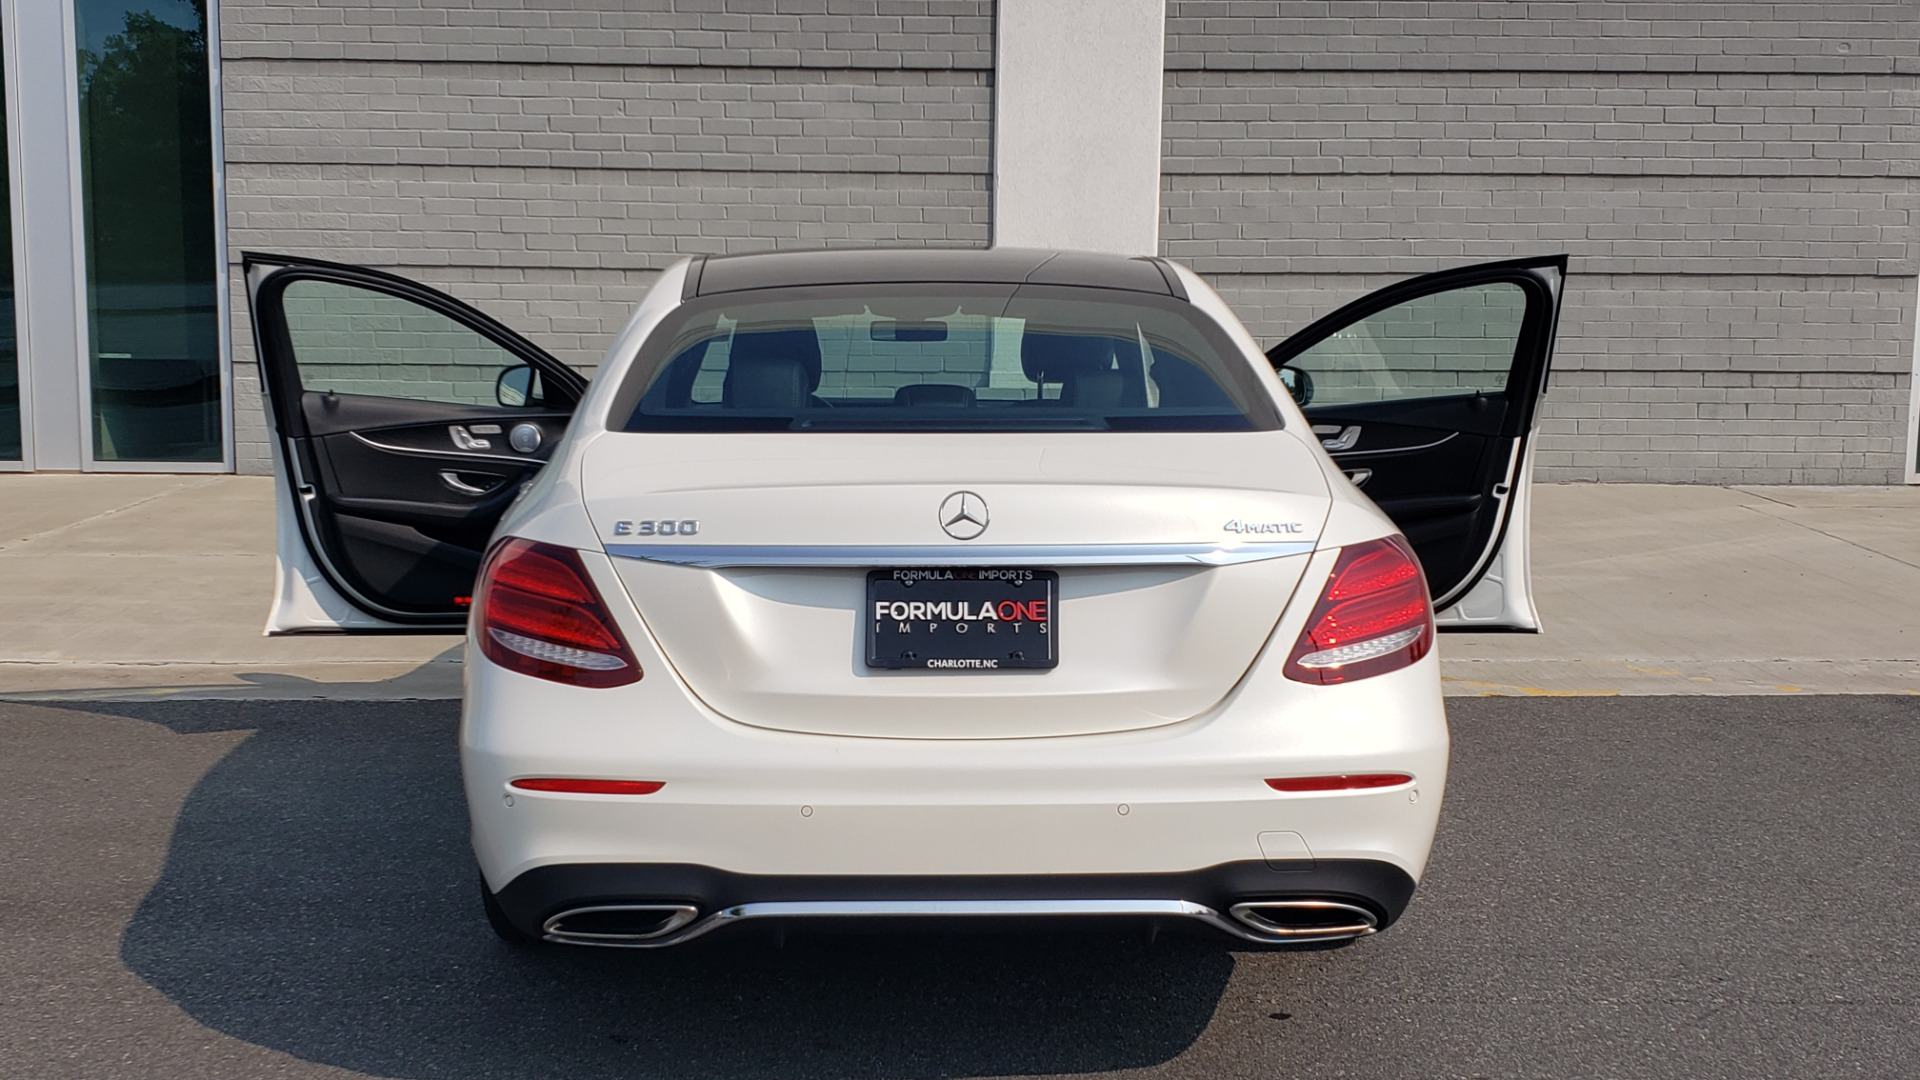 Used 2018 Mercedes-Benz E-CLASS E 300 4MATIC / PREMIUM / NAV / PANO-ROOF / BURMESTER / REARVIEW for sale $41,995 at Formula Imports in Charlotte NC 28227 25